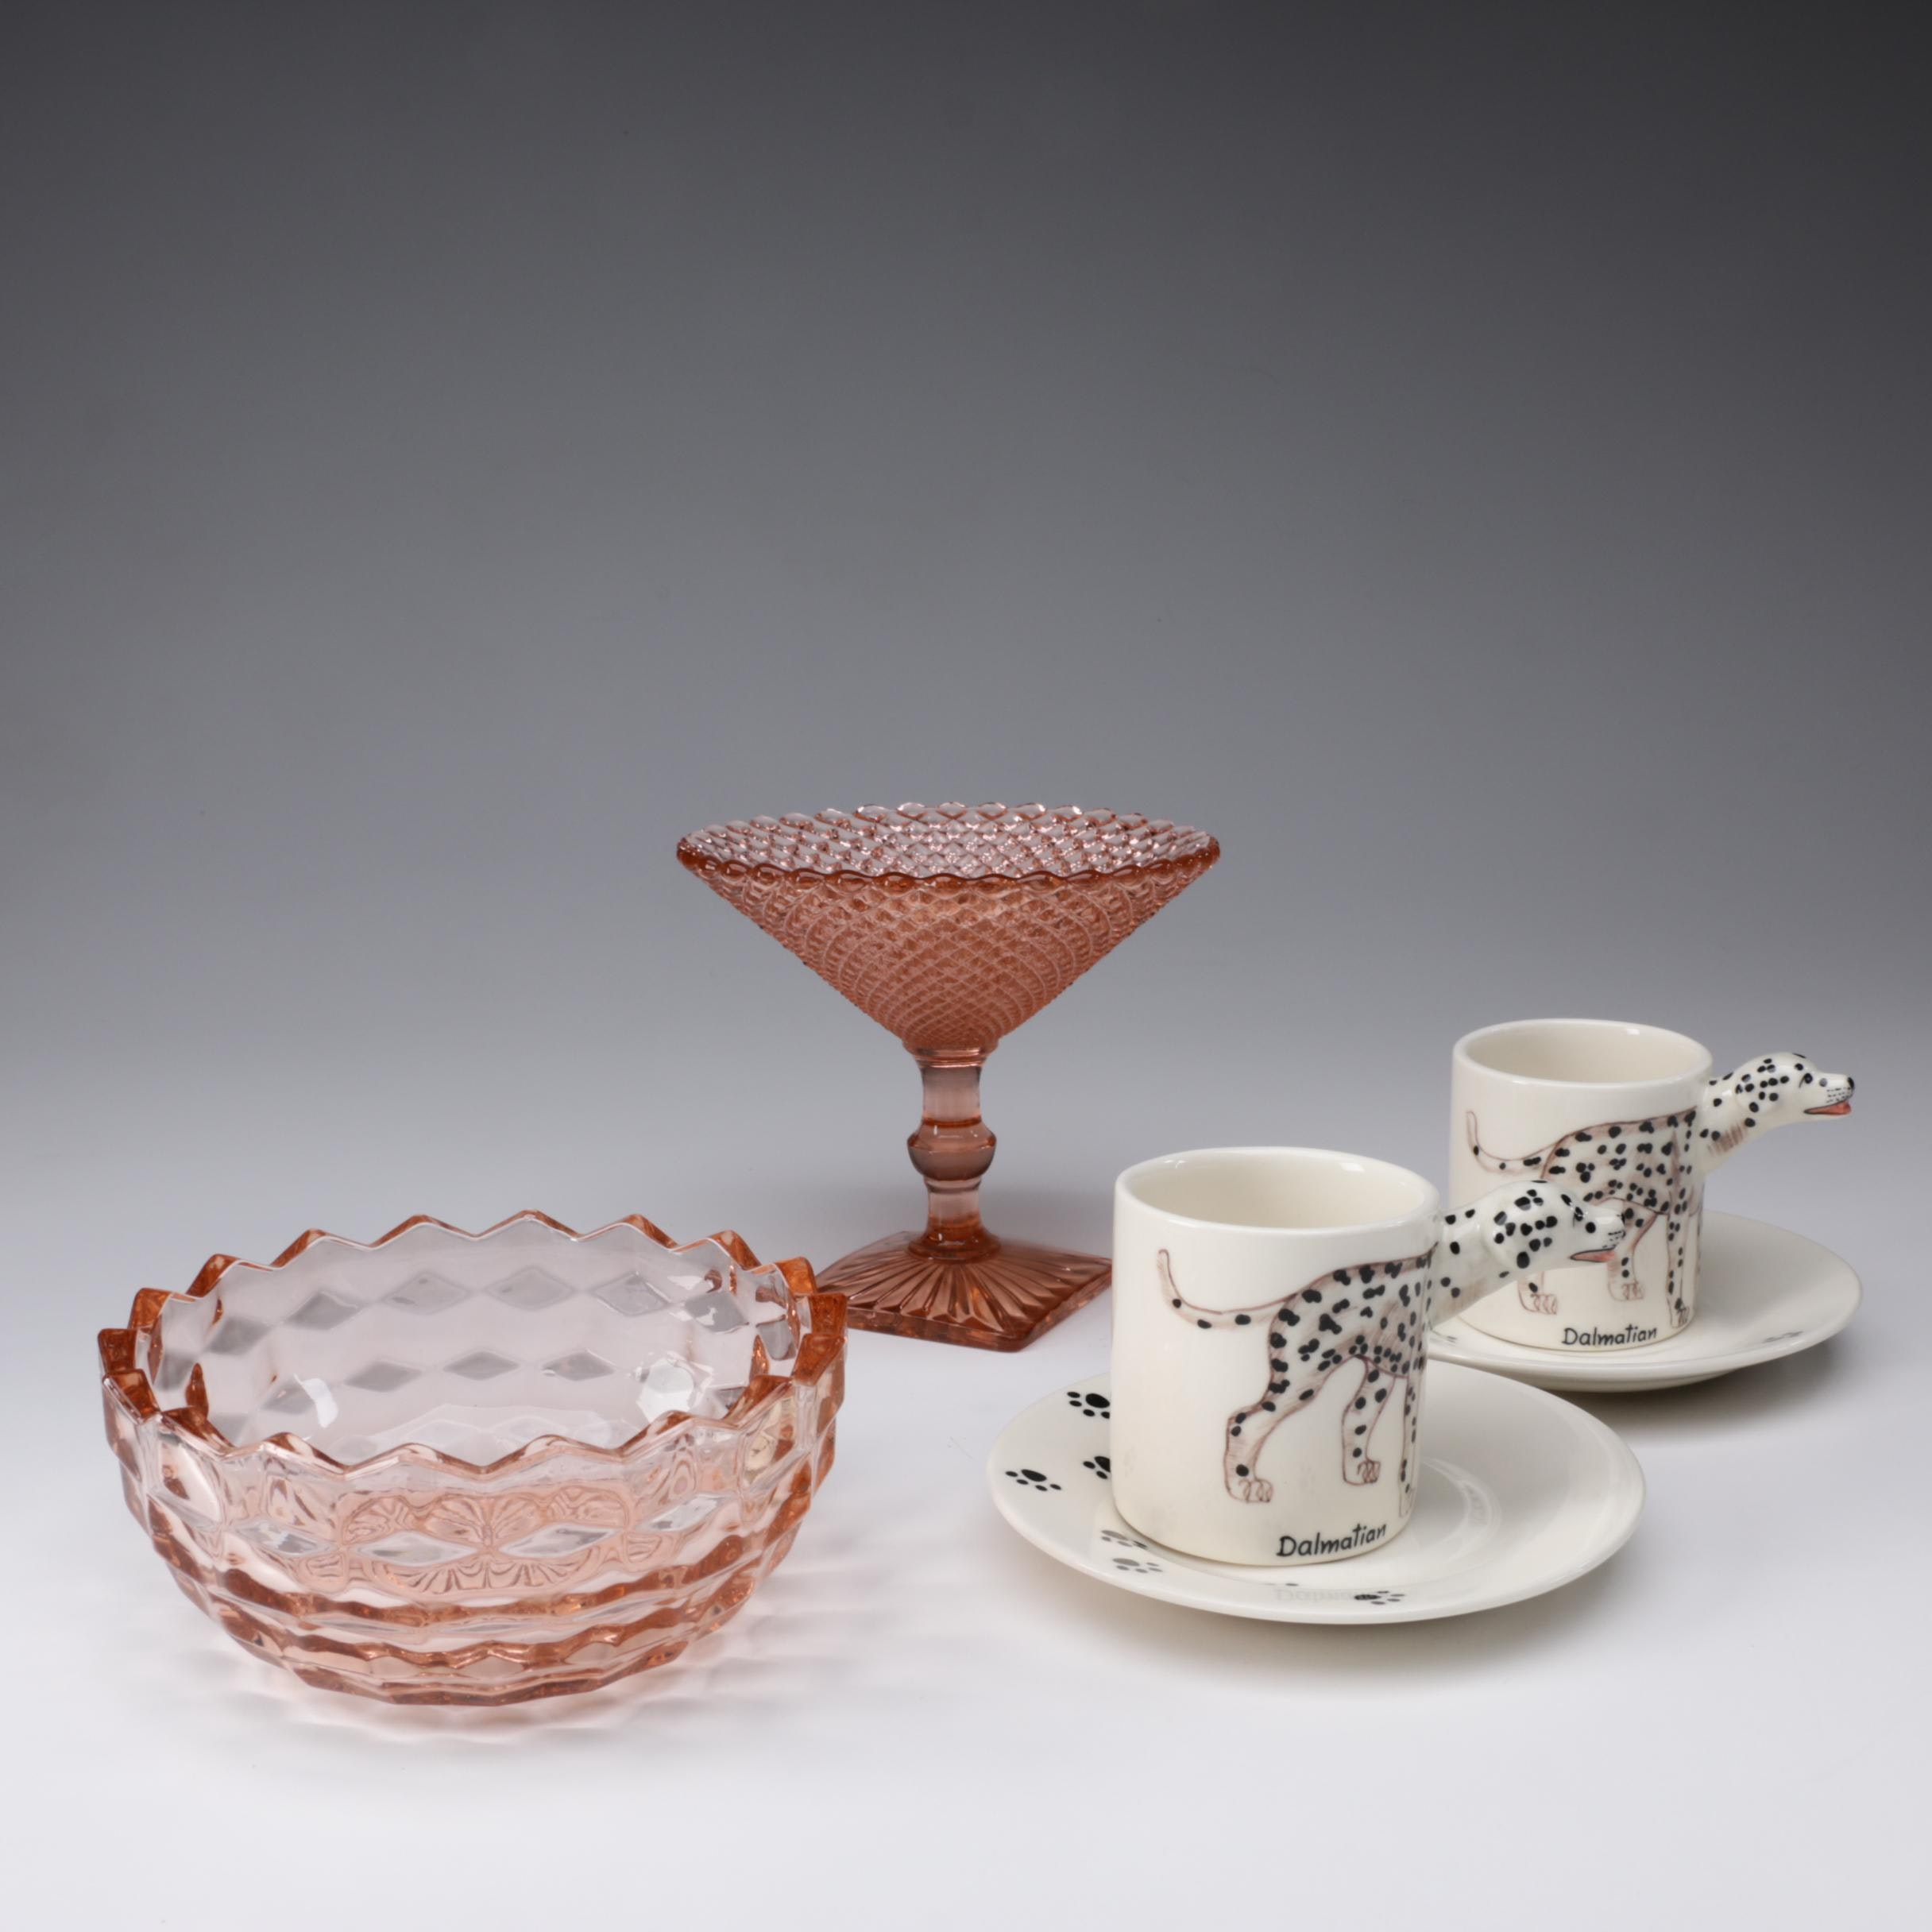 """Meelarp Hand-Painted Ceramic """"Dalmatian"""" Cups with Pink Depression Glass"""